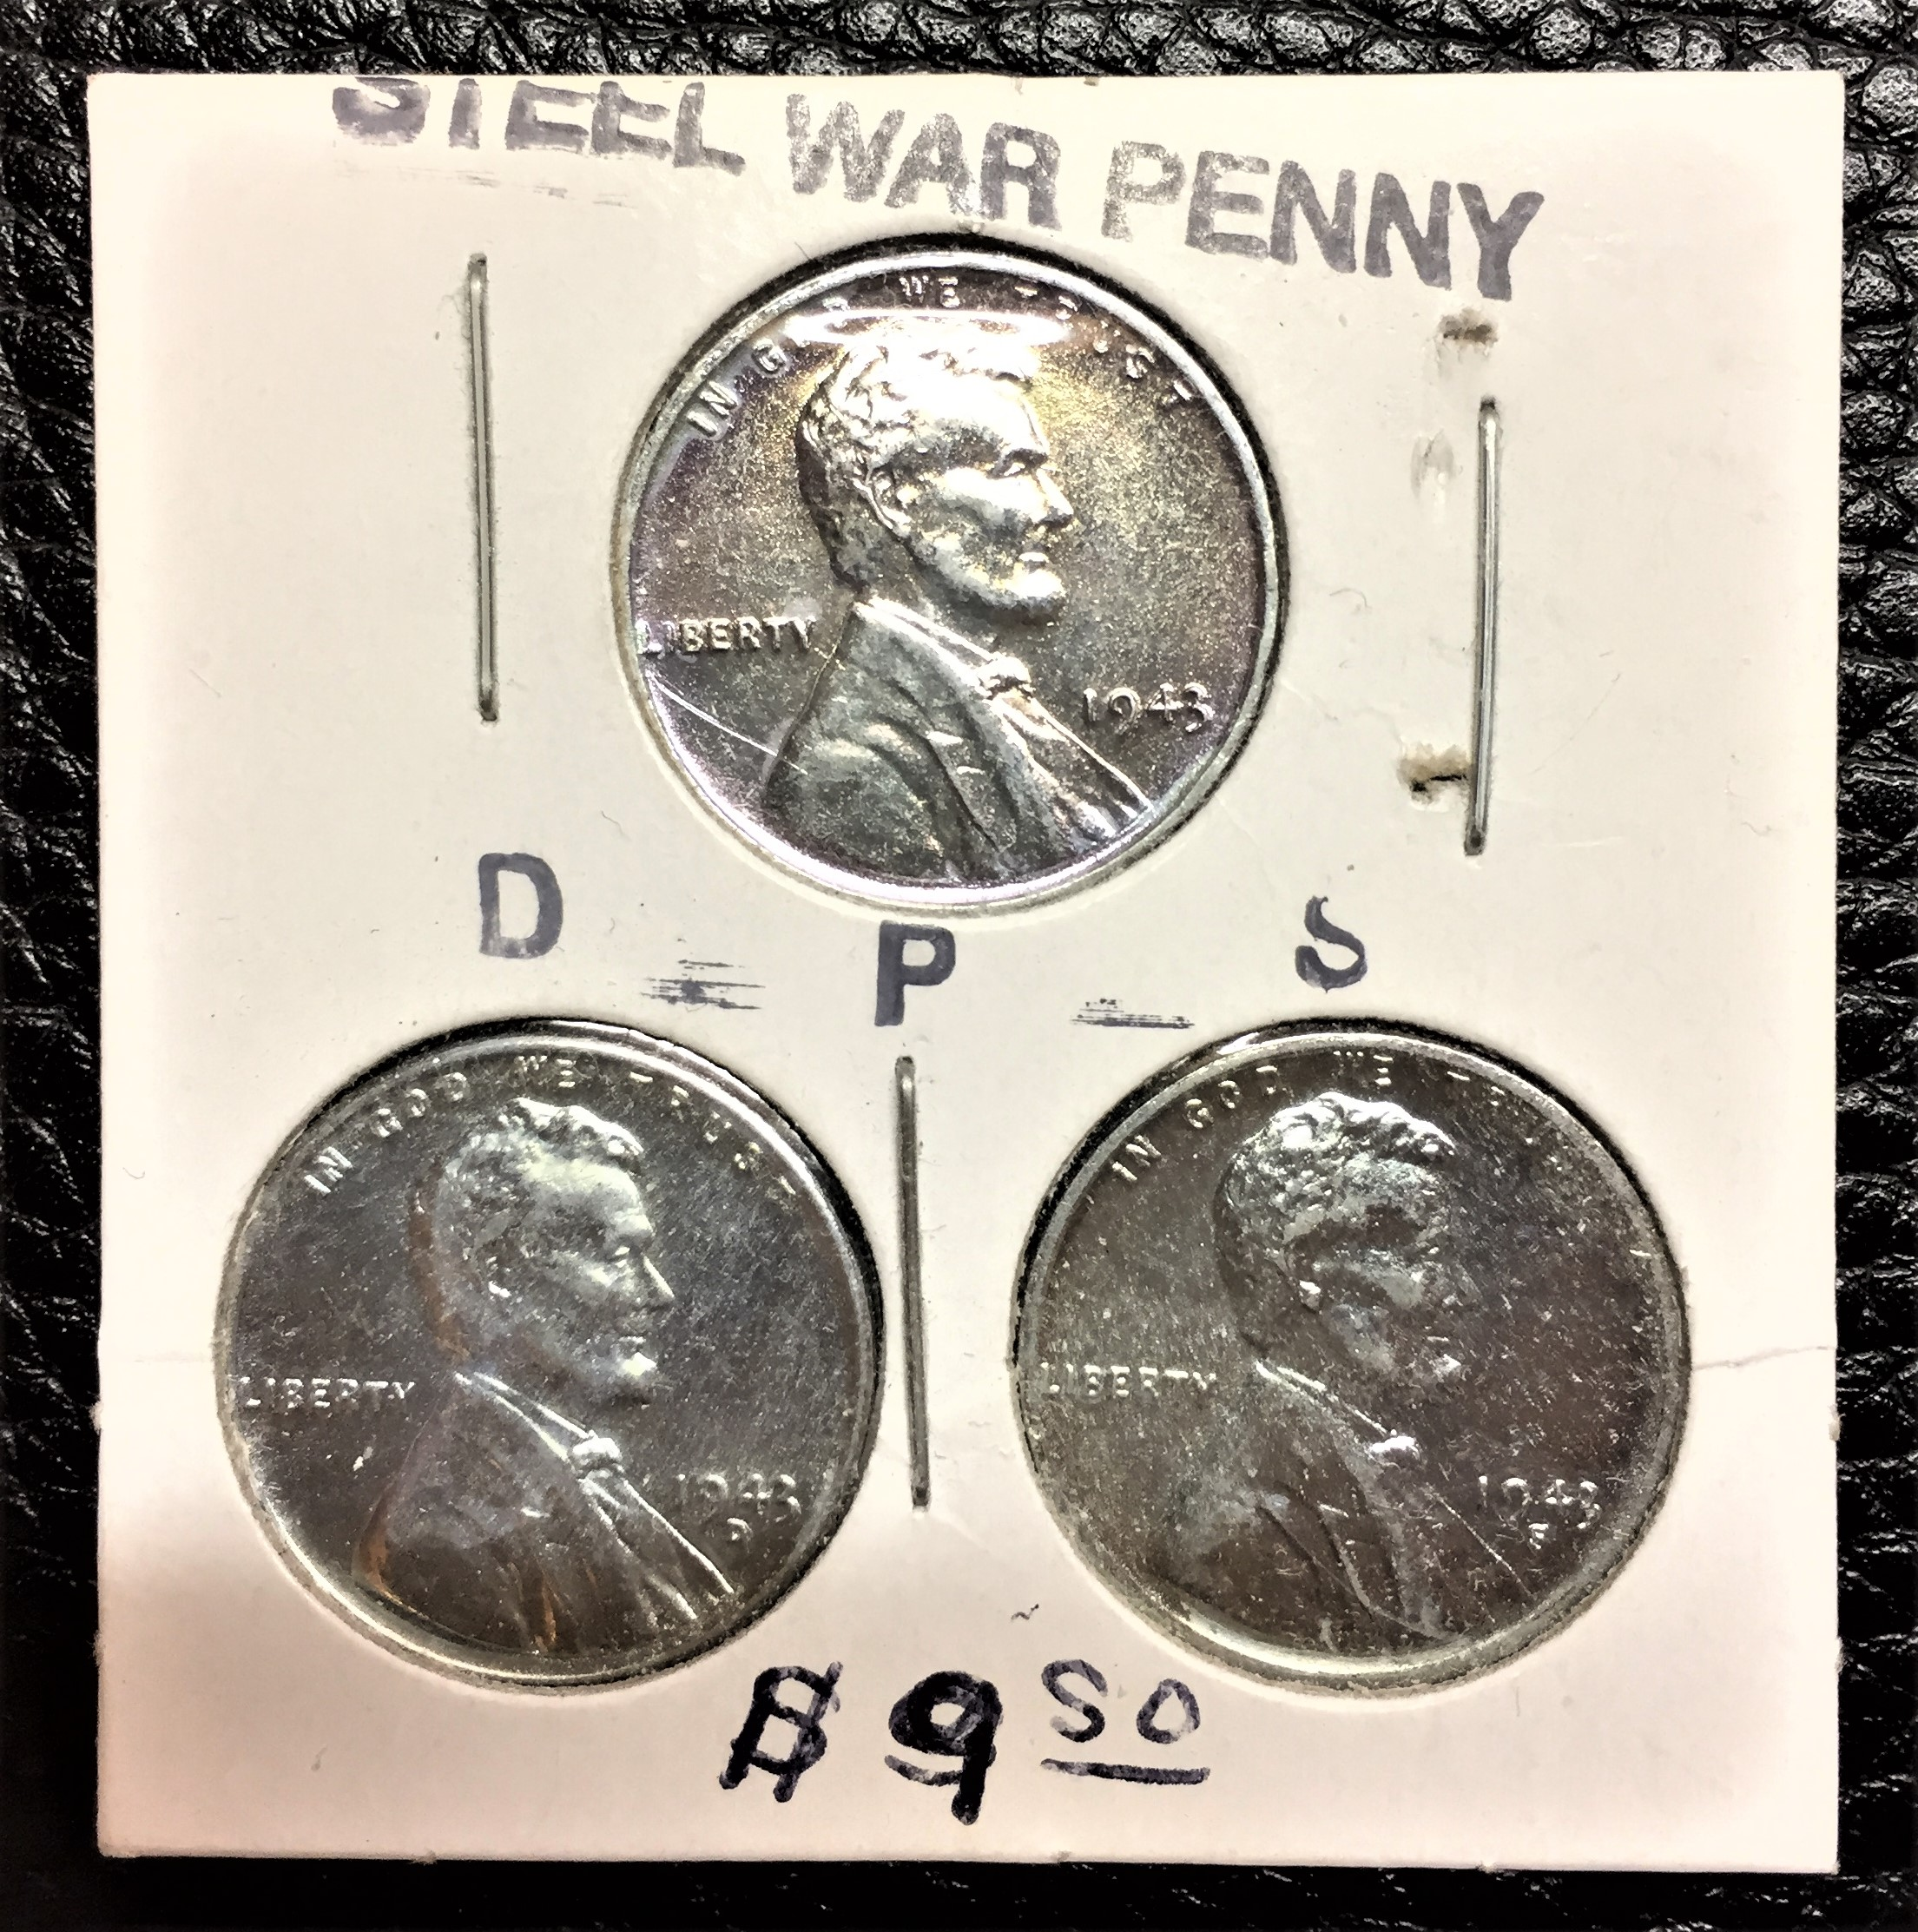 Steel pennies, 1943 (Sarah Sundin collection)